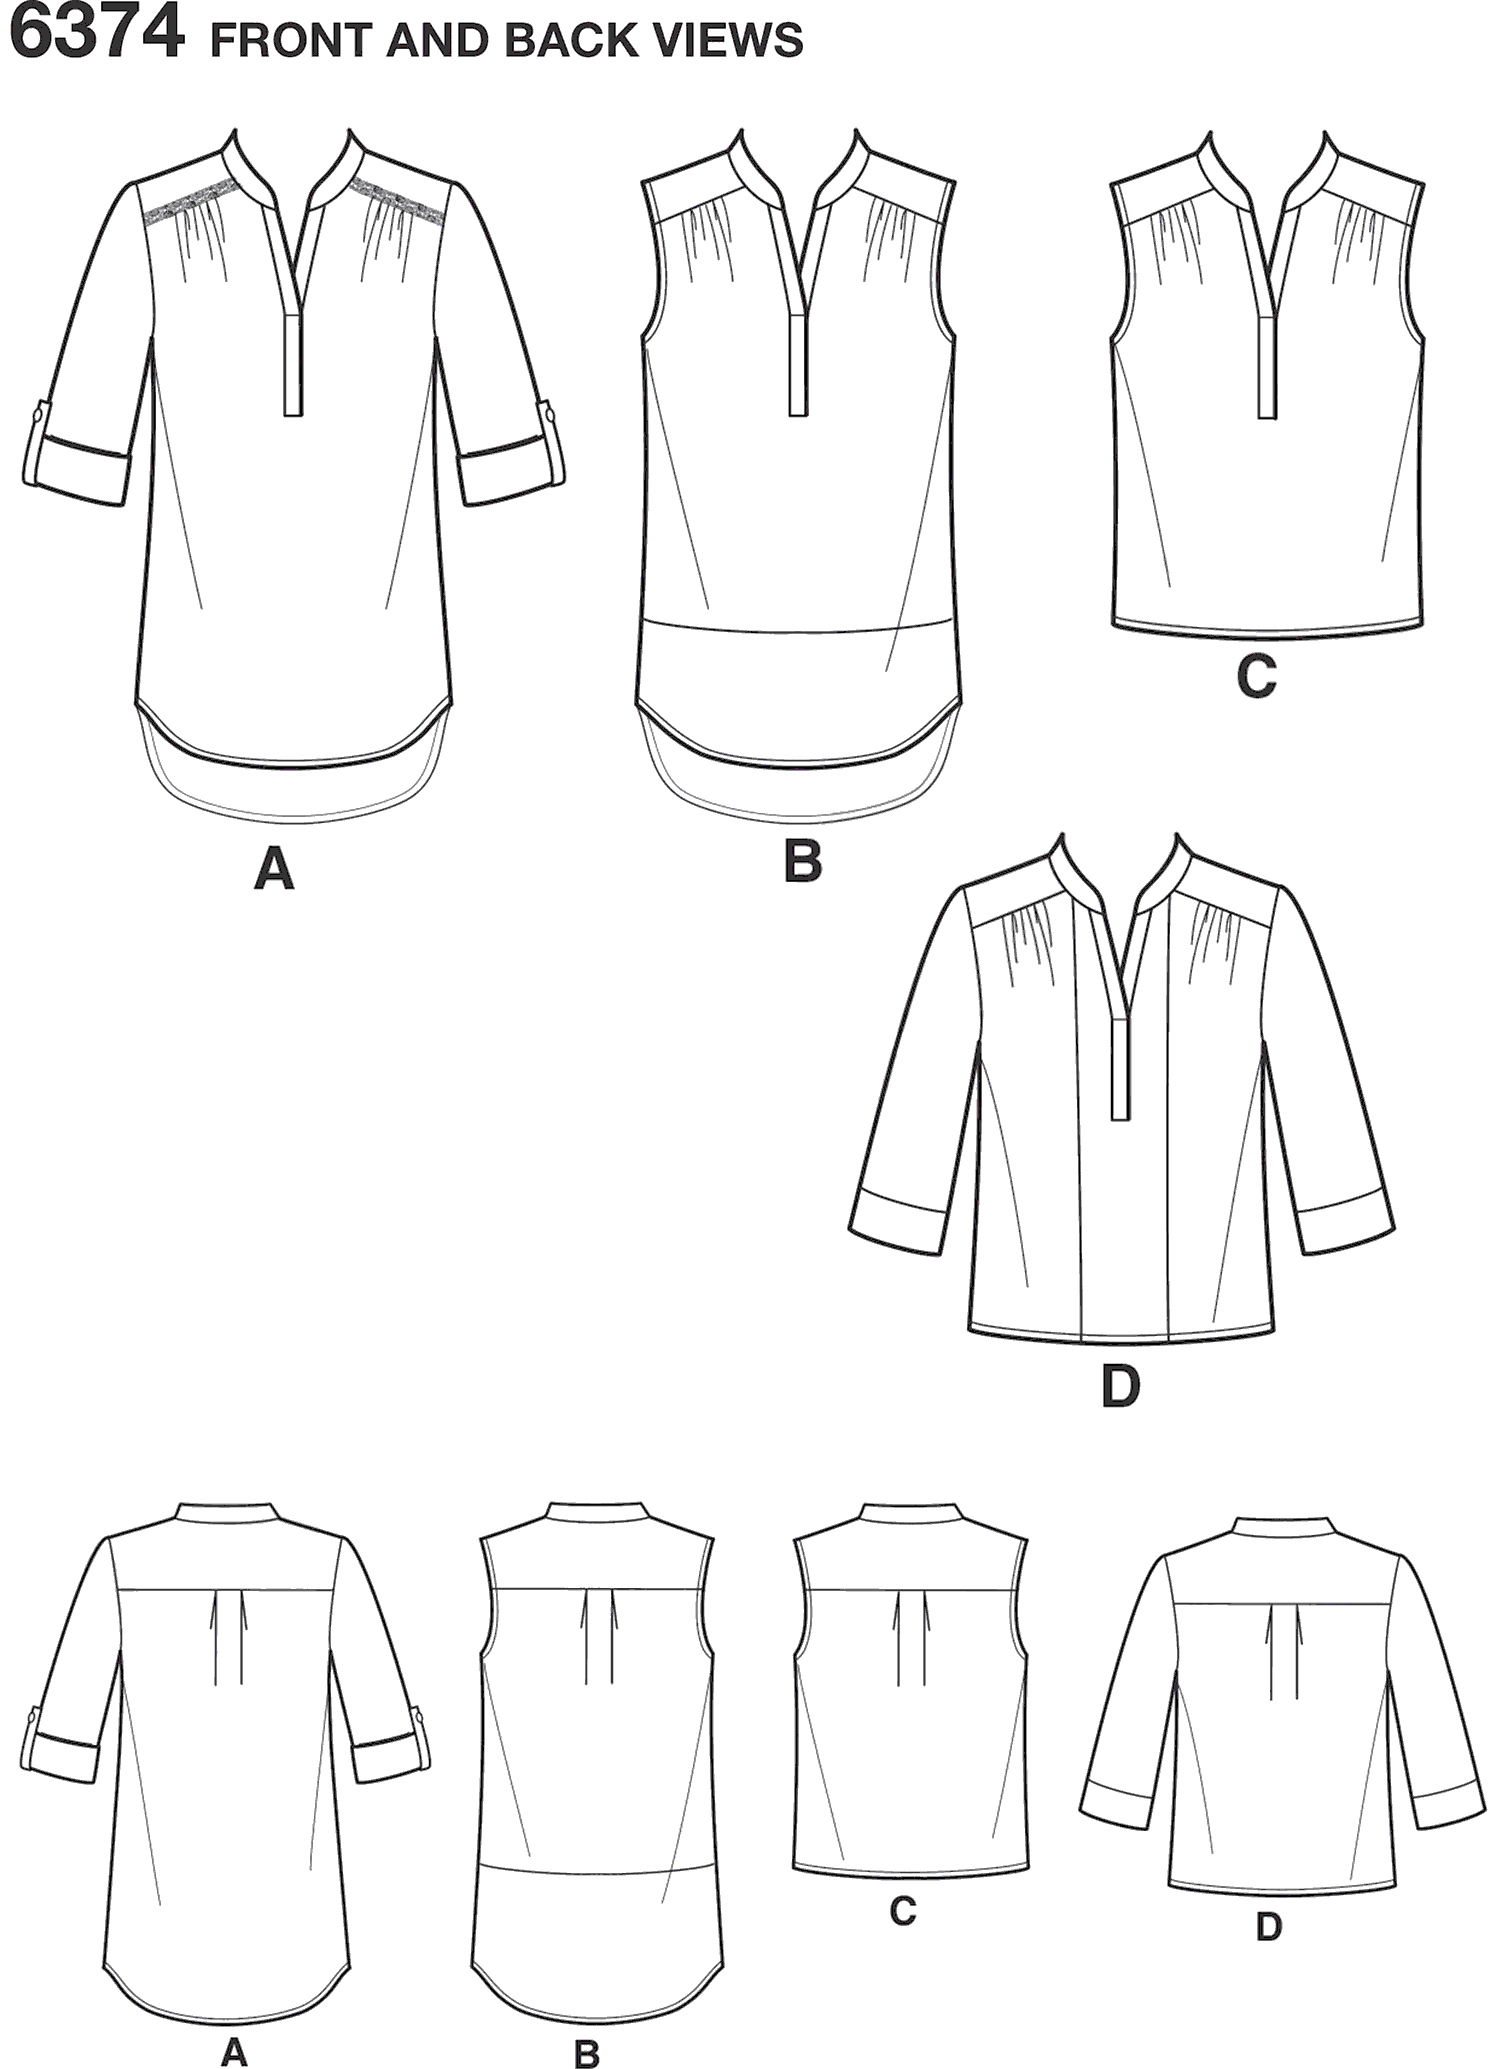 New Look Pattern 6374 Misses Shirts with Sleeve and Length Options Line Art From Patternsandplains.com